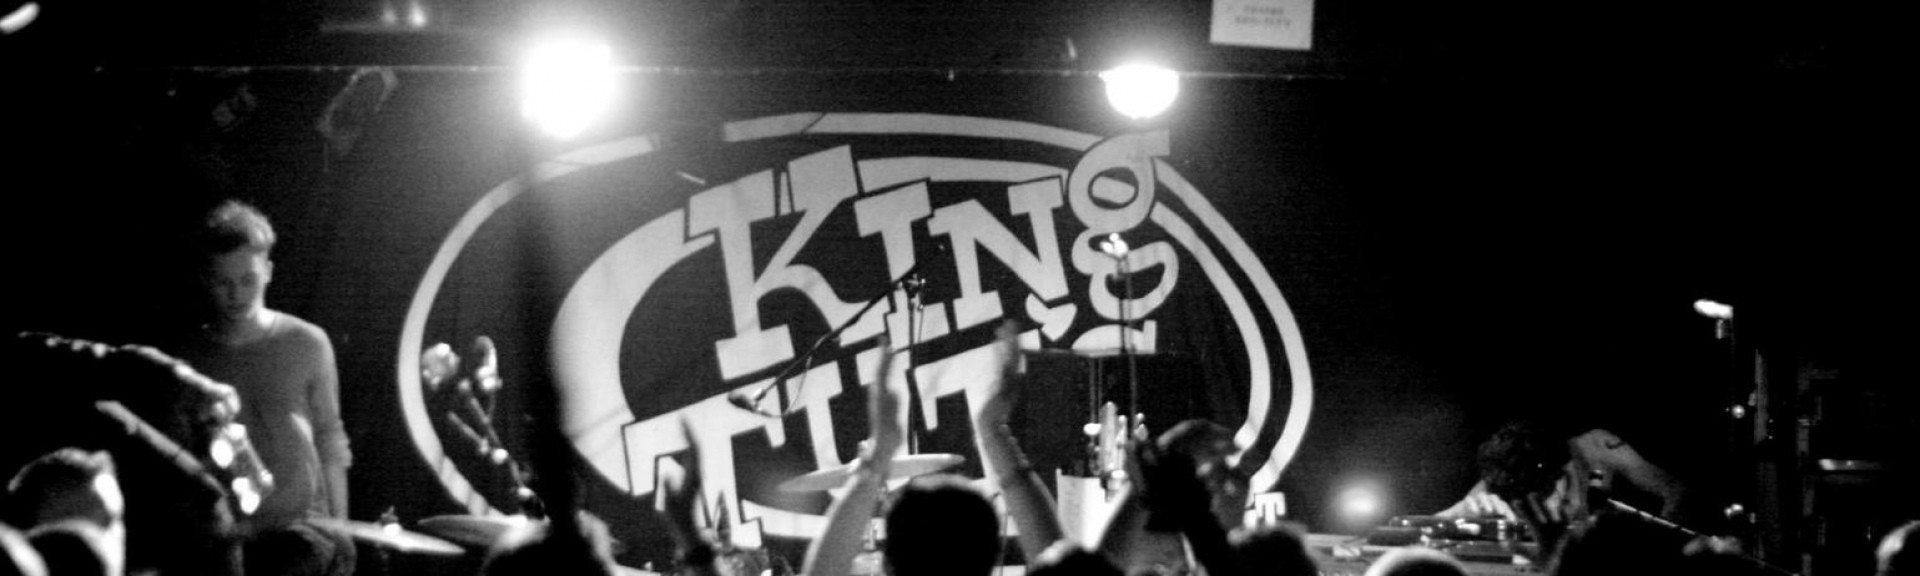 King Tut's Wah Wah Hut, Glasgow